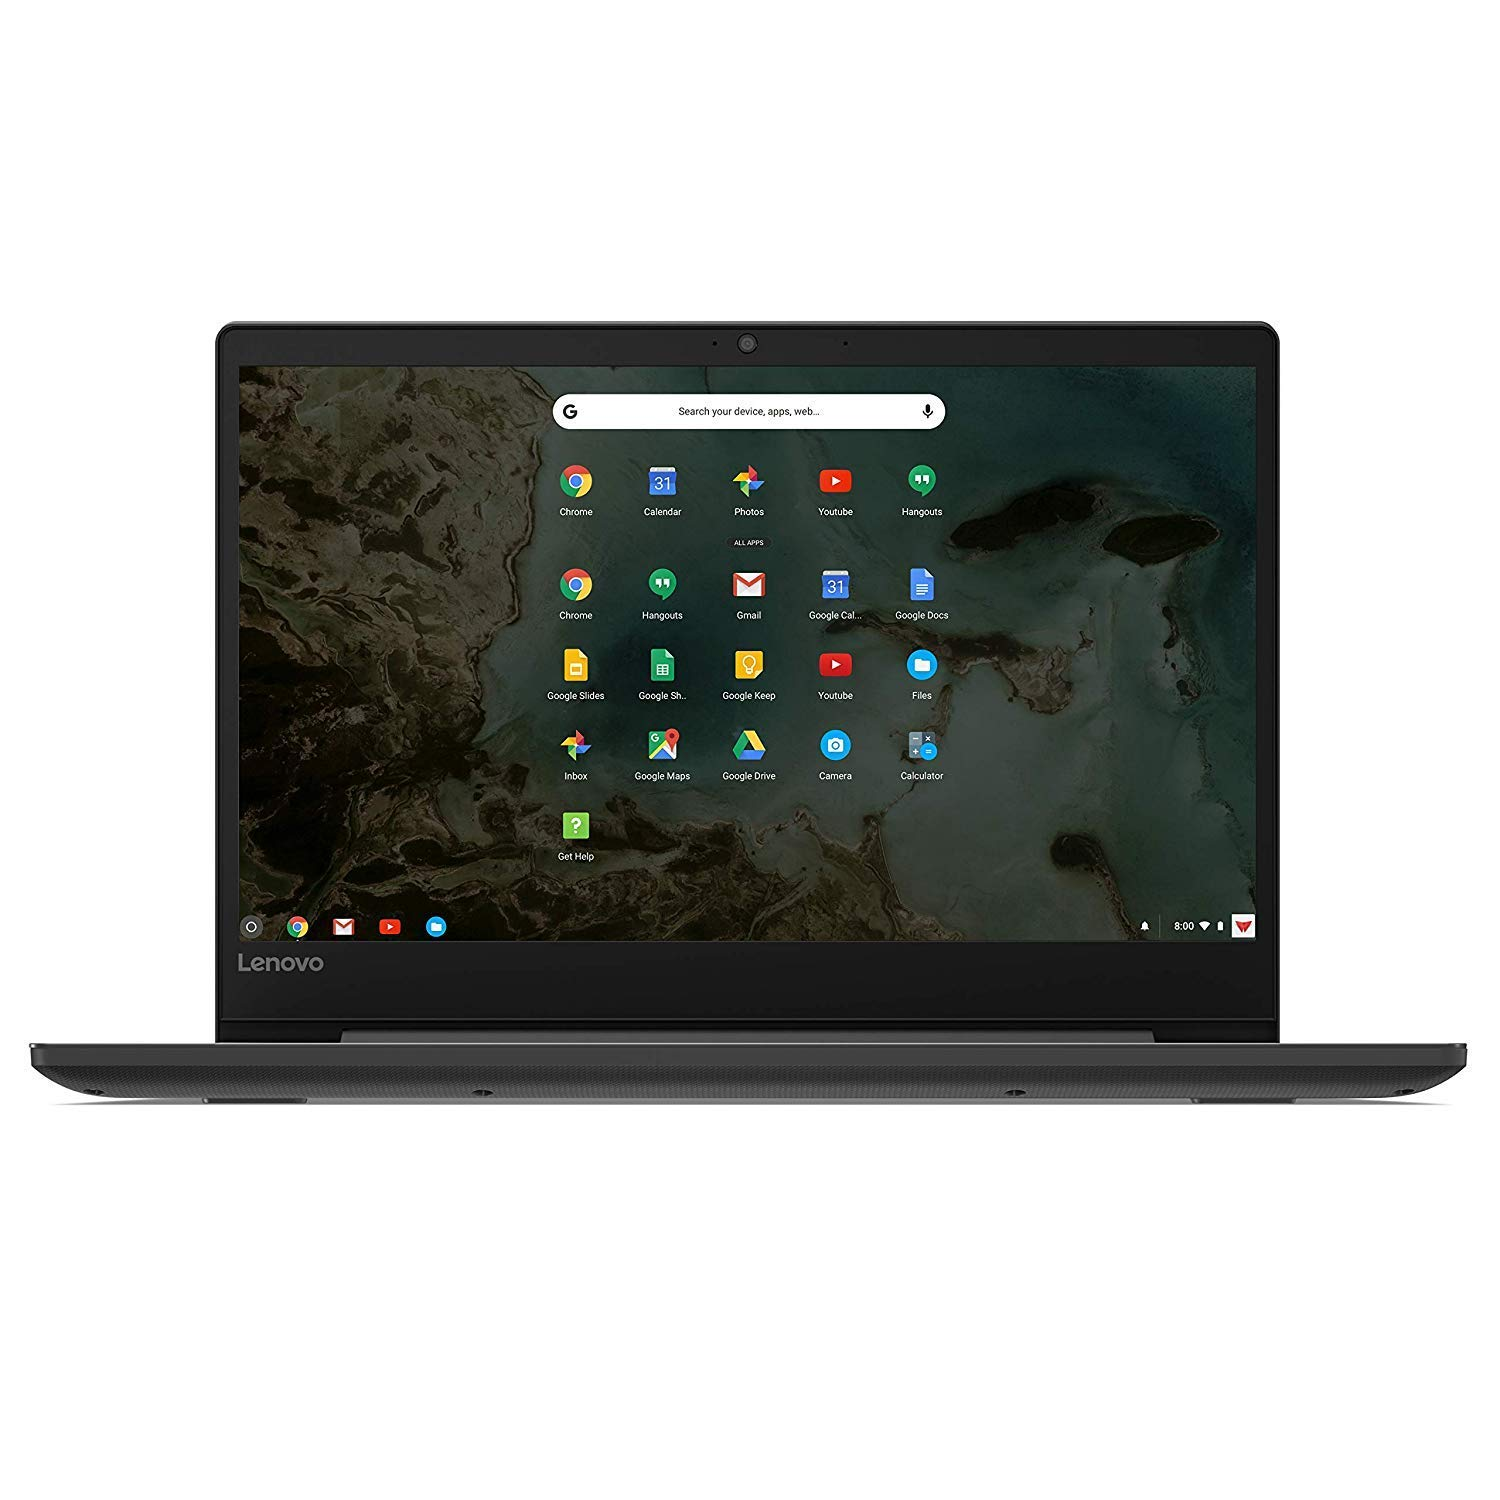 2019 Lenovo Chromebook S330 14 Thin and Light Laptop Computer, MediaTek MTK 8173C 1.70GHz, 4GB RAM, 64GB eMMC, 802.11ac WiFi, Bluetooth 4.1, USB-C, HDMI, Chrome OS